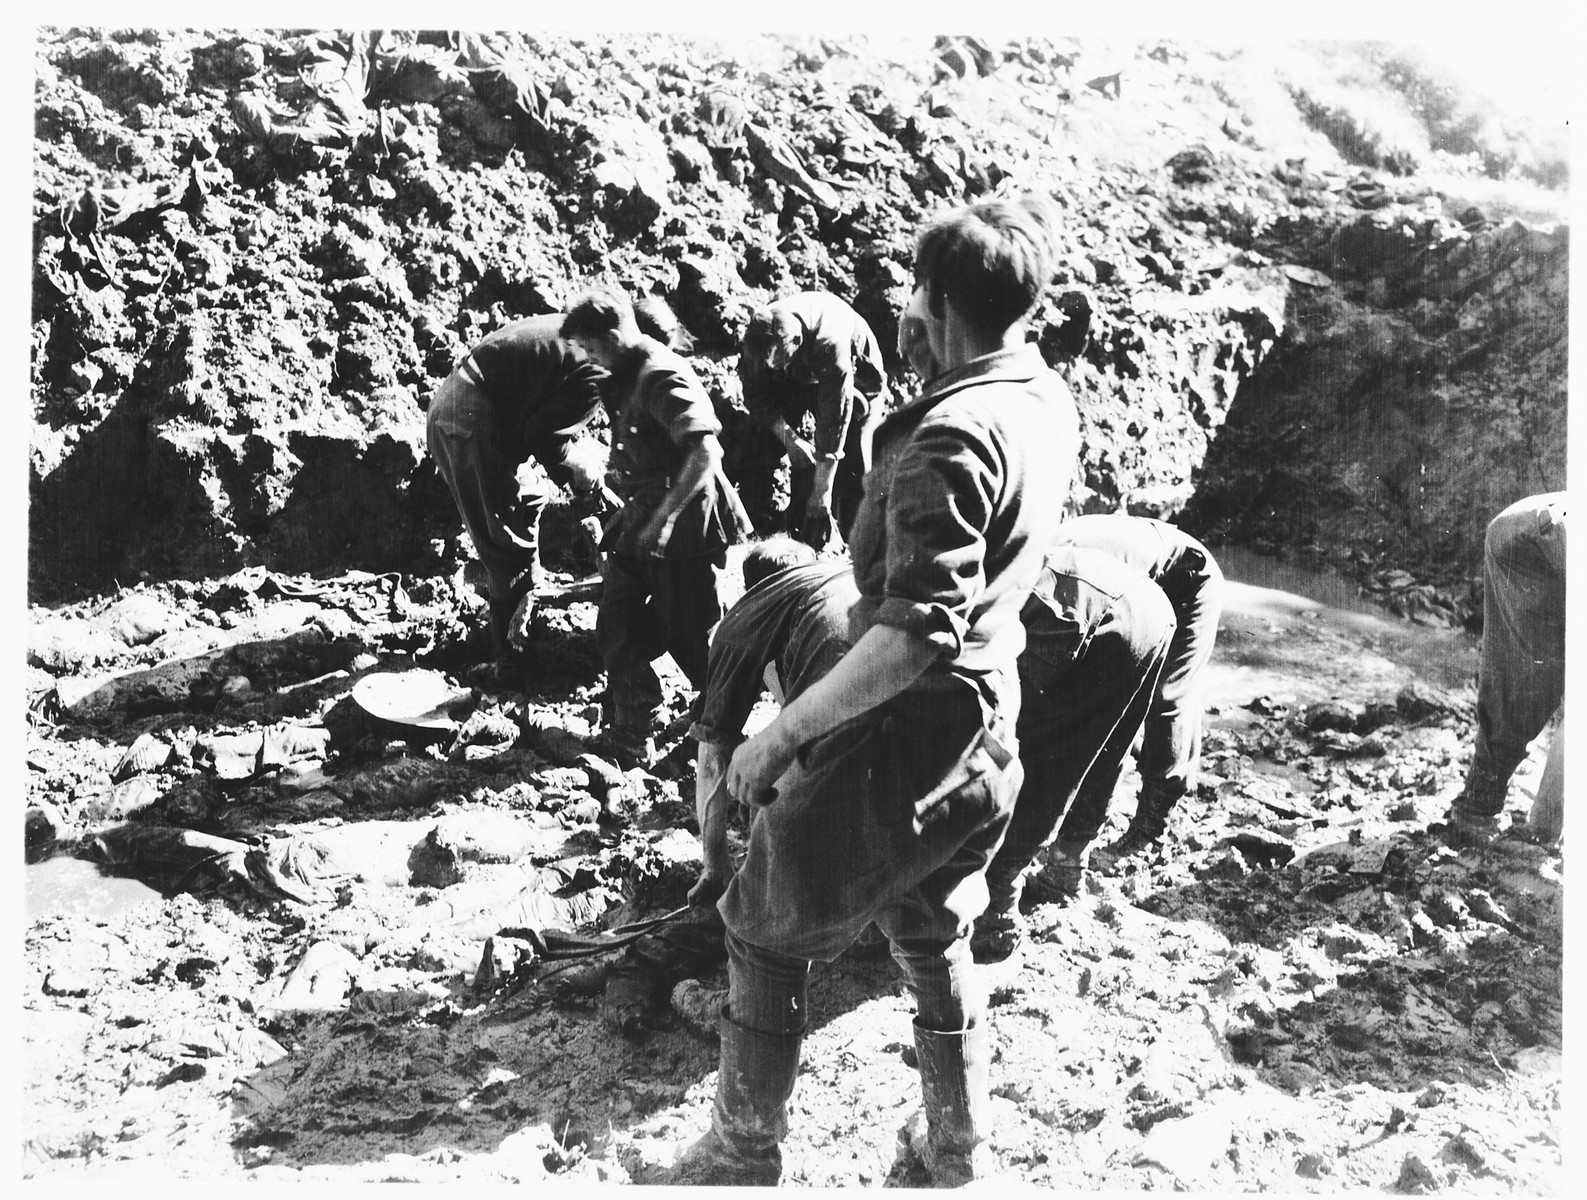 German prisoners of war from a nearby internment camp are forced to exhume bodies from a mass grave found near the town of Nammering.